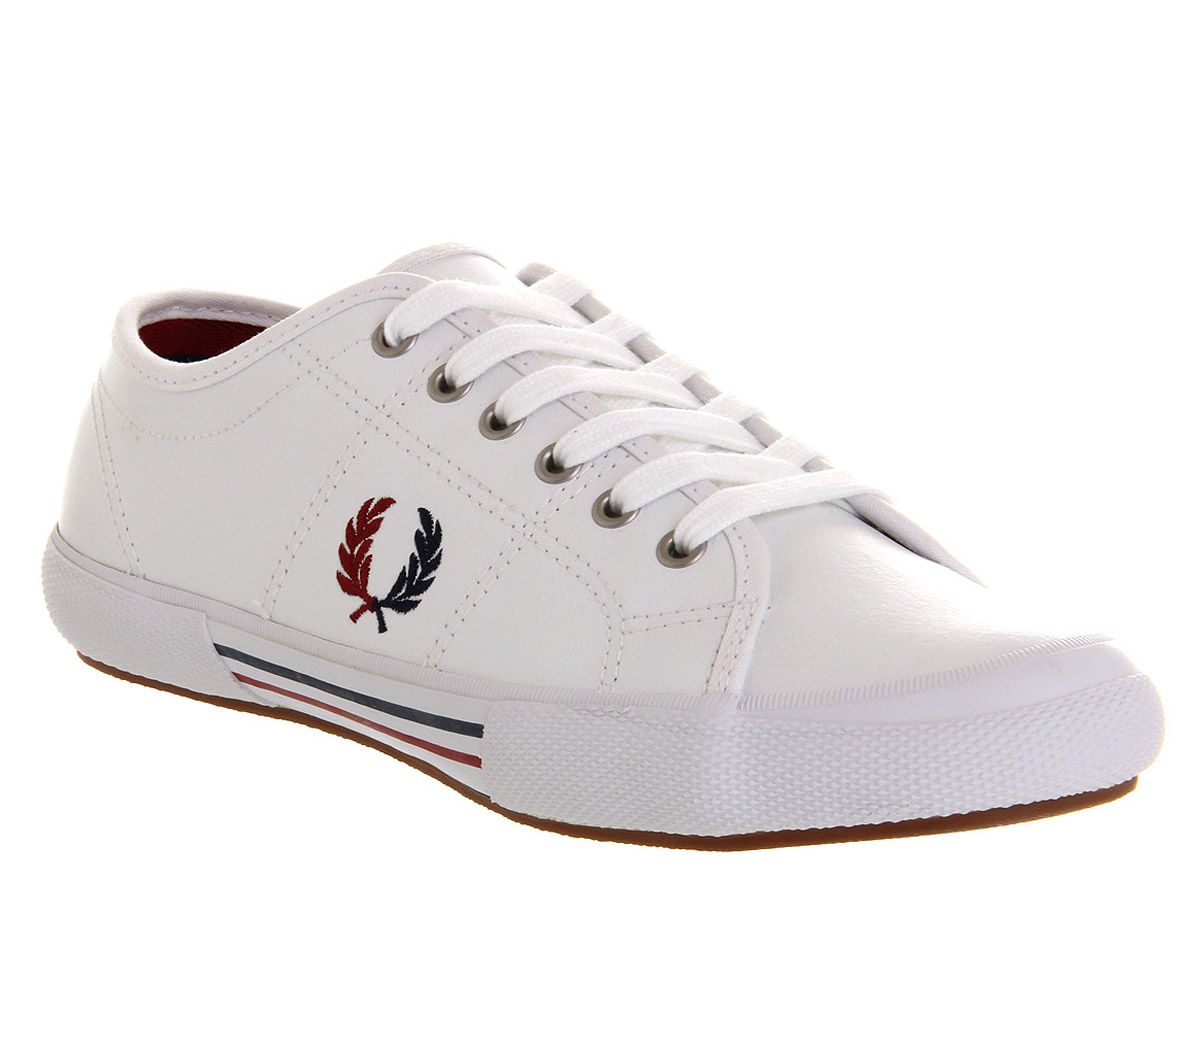 Mens Fred Perry Vintage Tennis Leather White Navy Red Exclusive Trainers Shoes   eBay